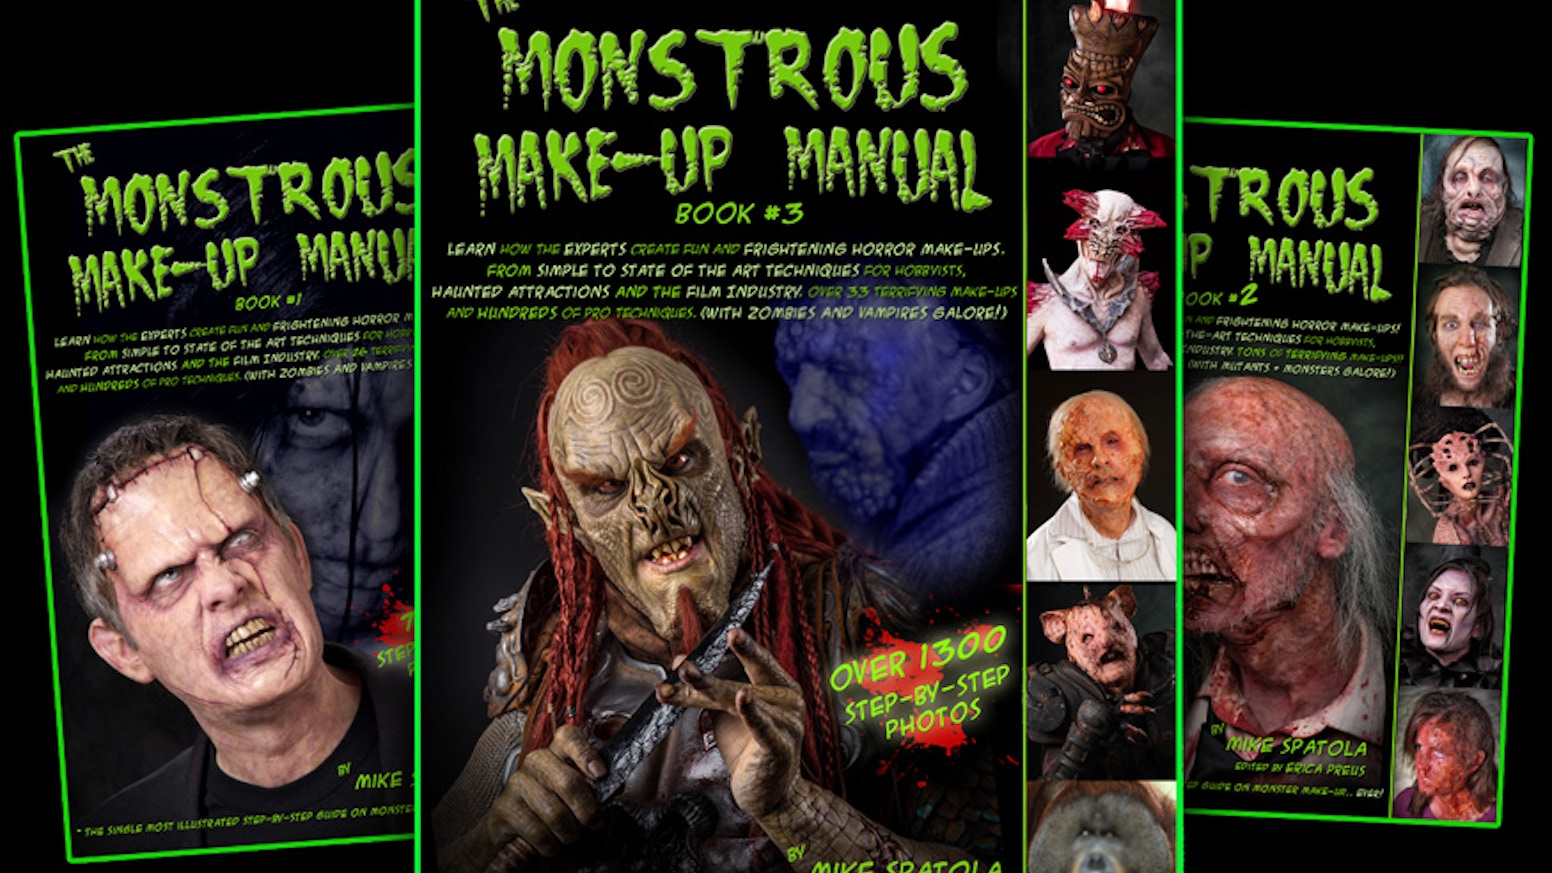 The 3rd installment in The Monstrous Makeup Manual series by Mike Spatola. With More Monsters! More techniques! More Amazing Artists!